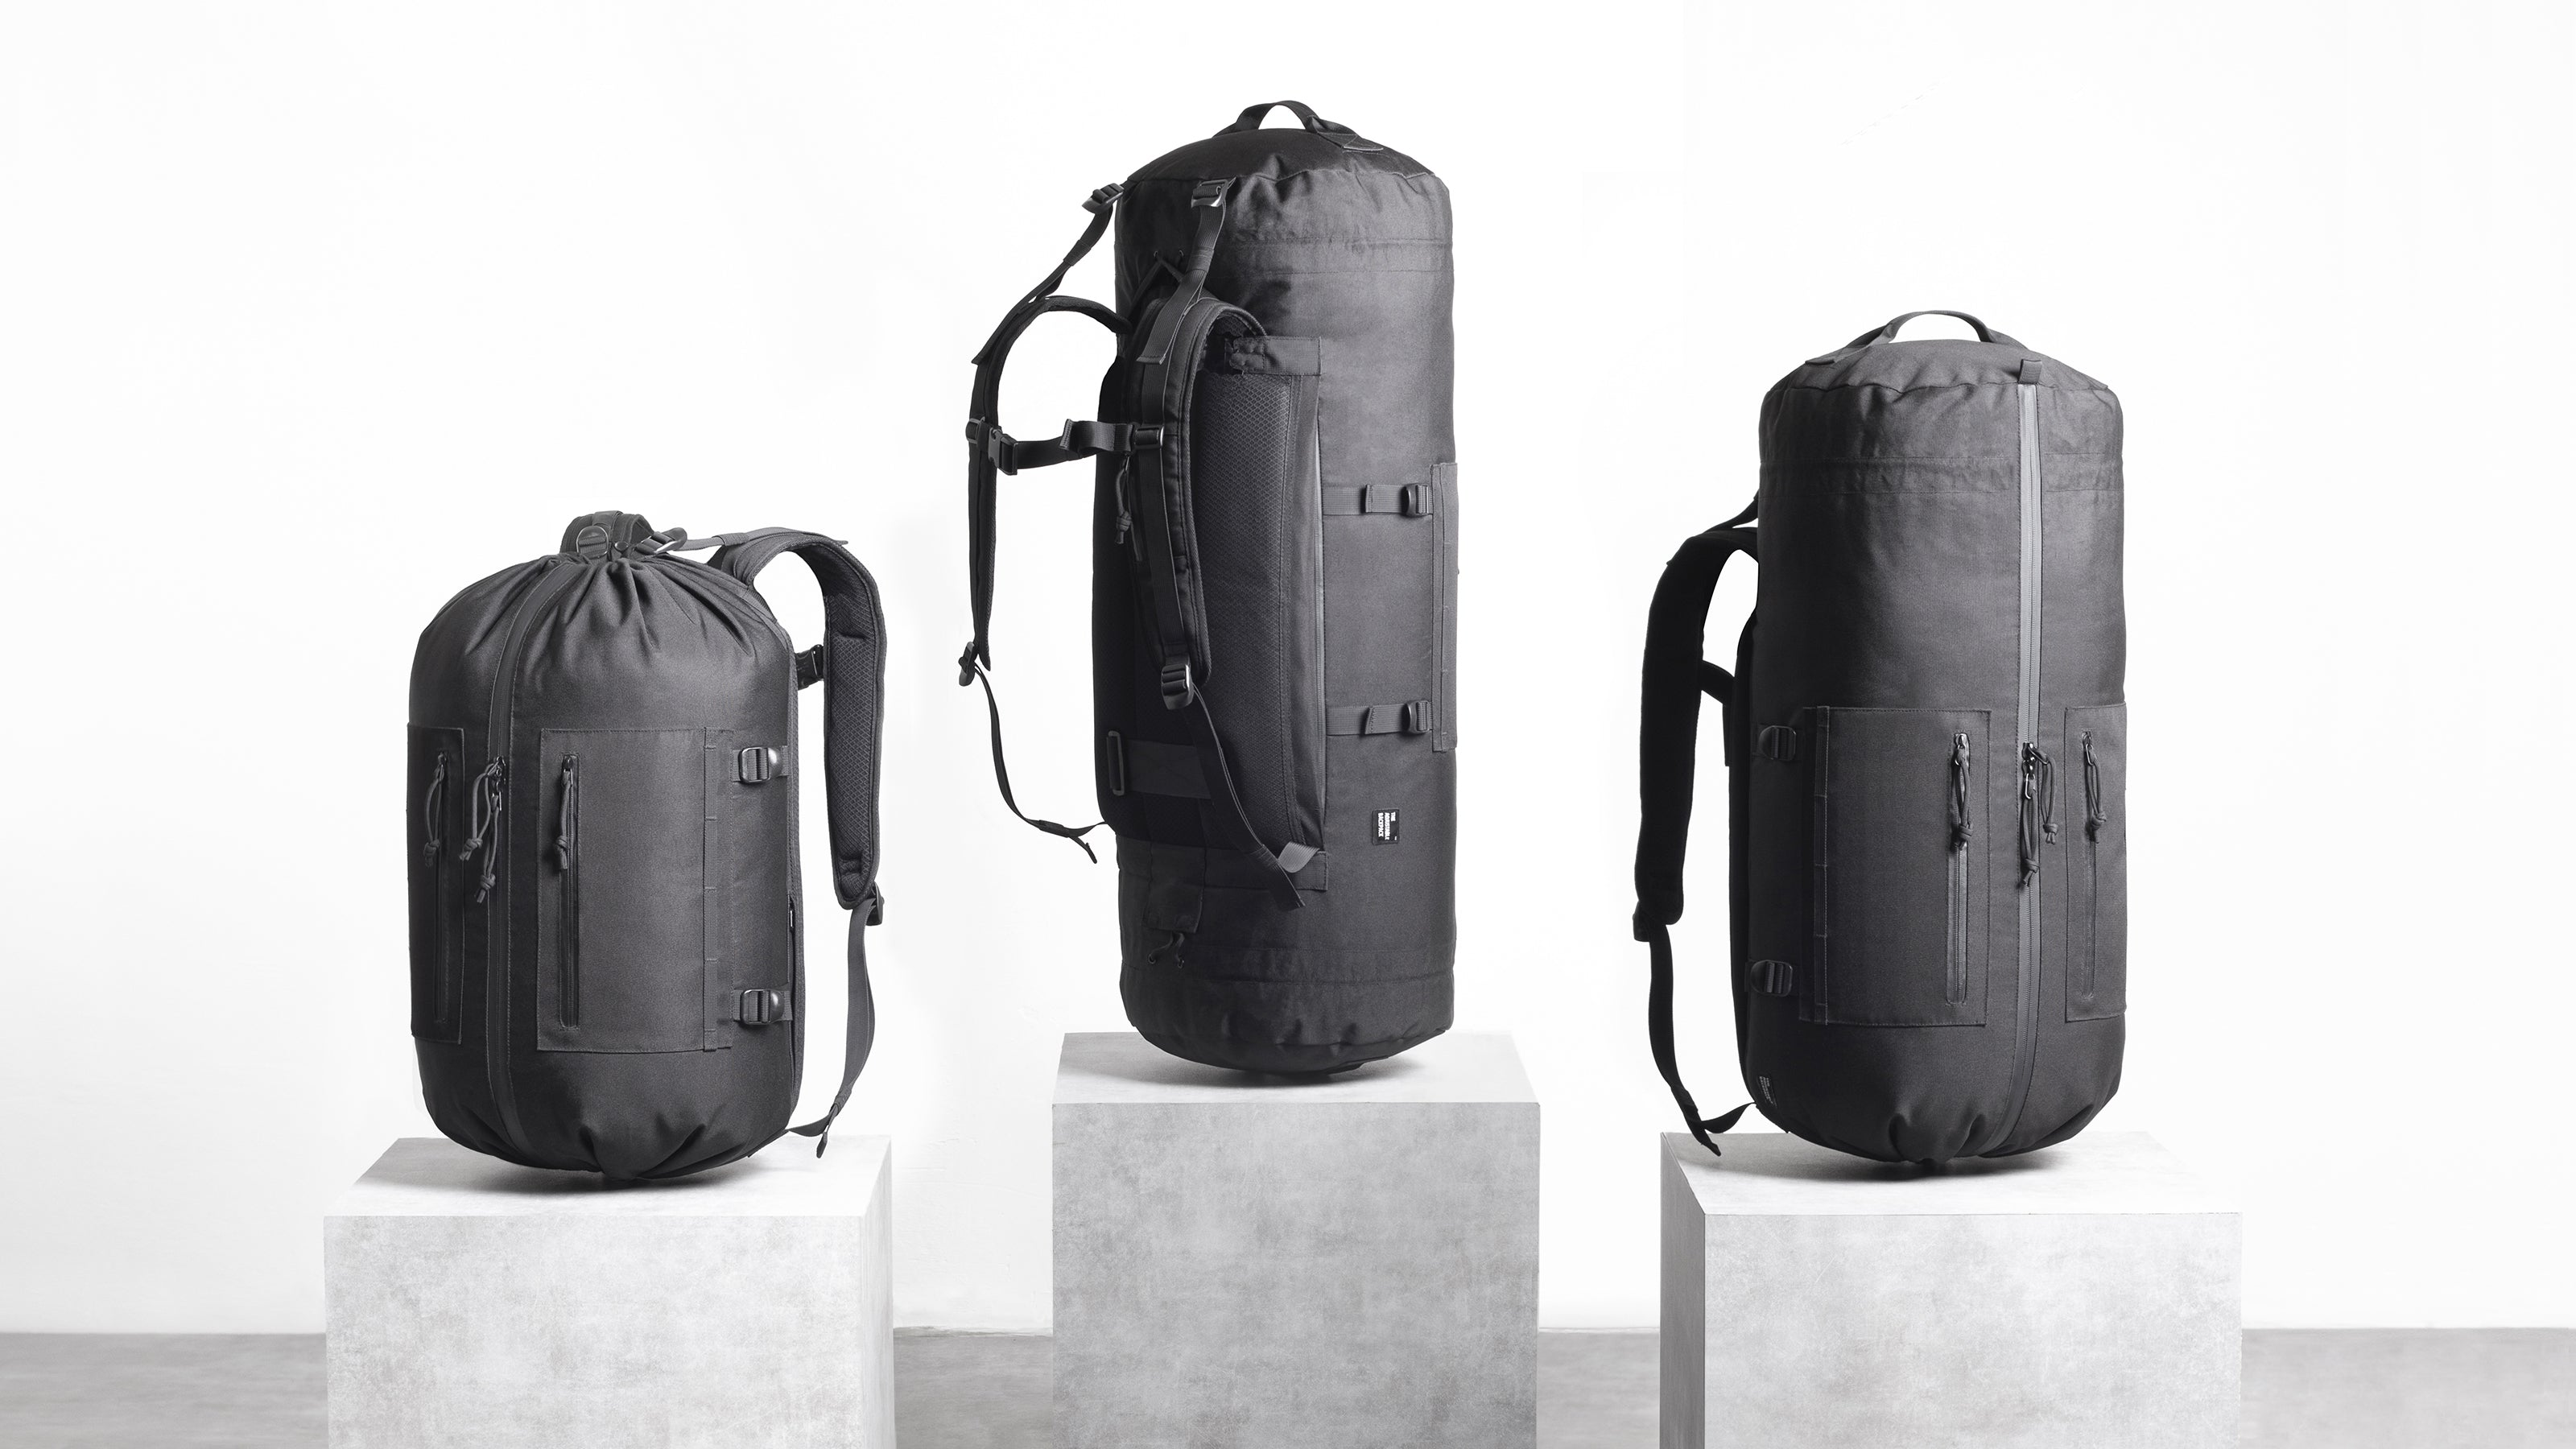 The Adjustable Backpack B3